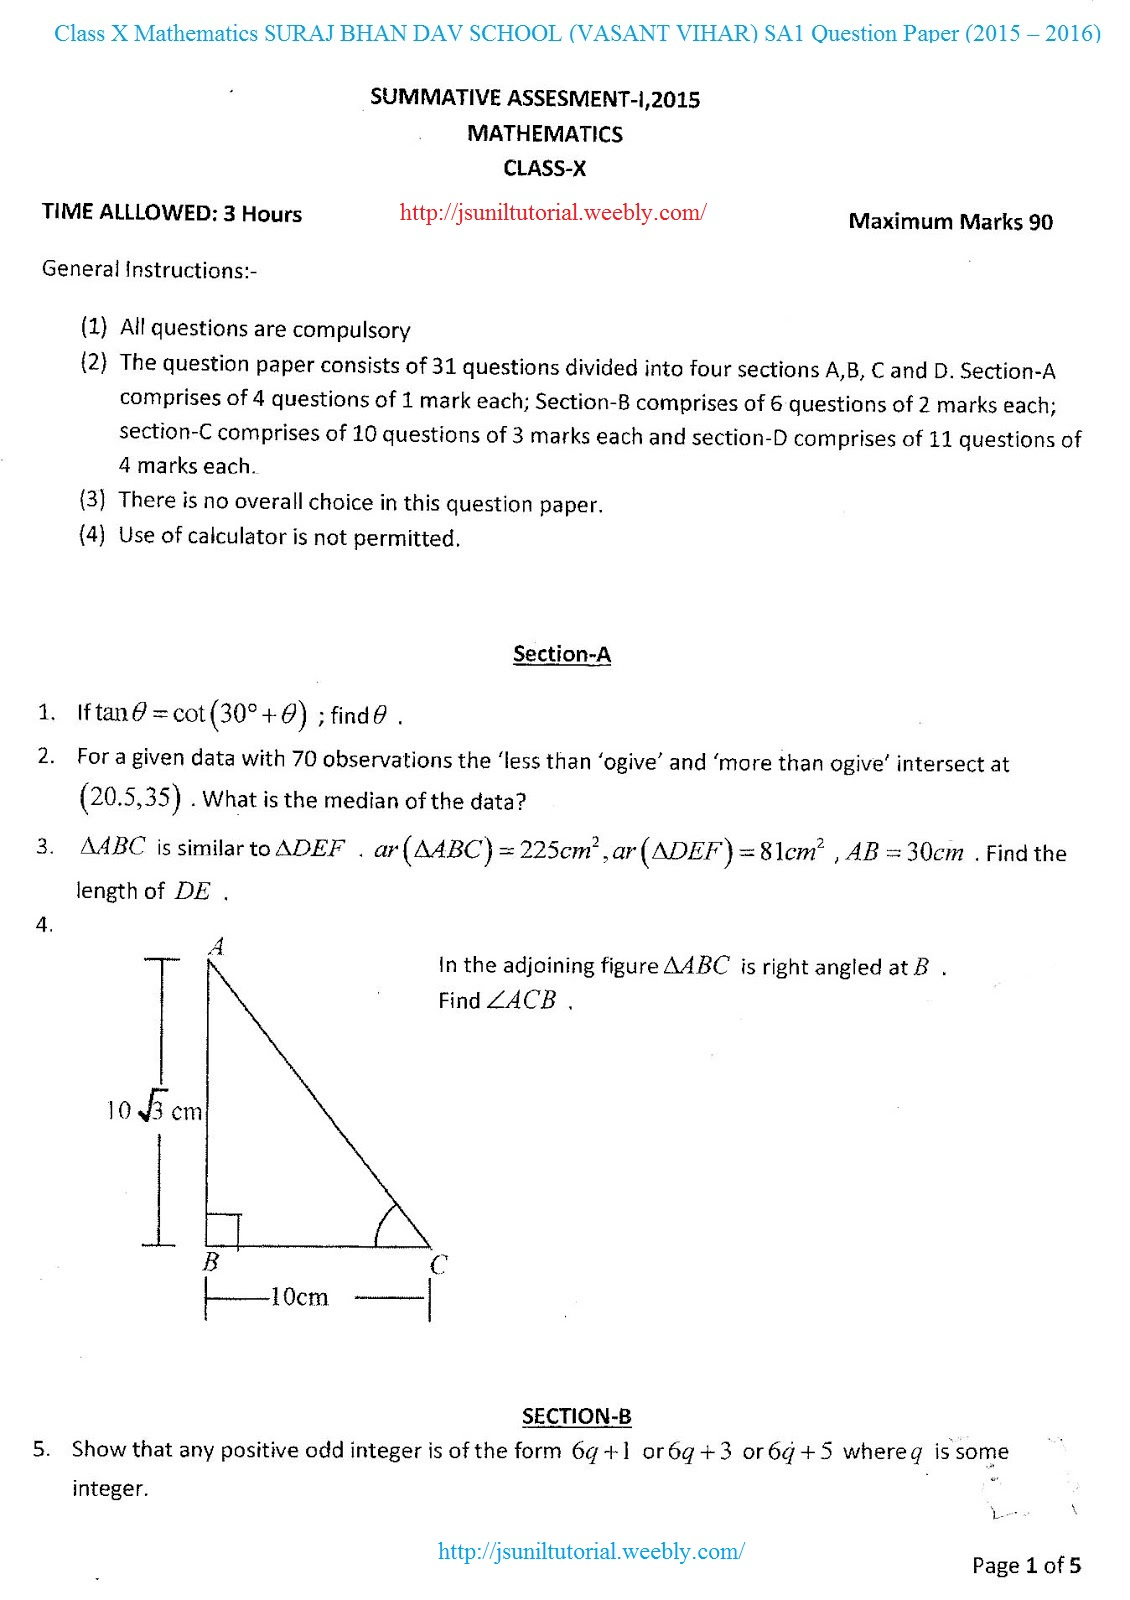 s a 2 maths paper Maths and science(revised) class ix and x sample papers for periodic test 03 exam & maths class vi to viii sample papers for periodic test 02 exam please click the below links to download the sample papers for class ix and x maths and science for periodic test 03 exam & maths class.